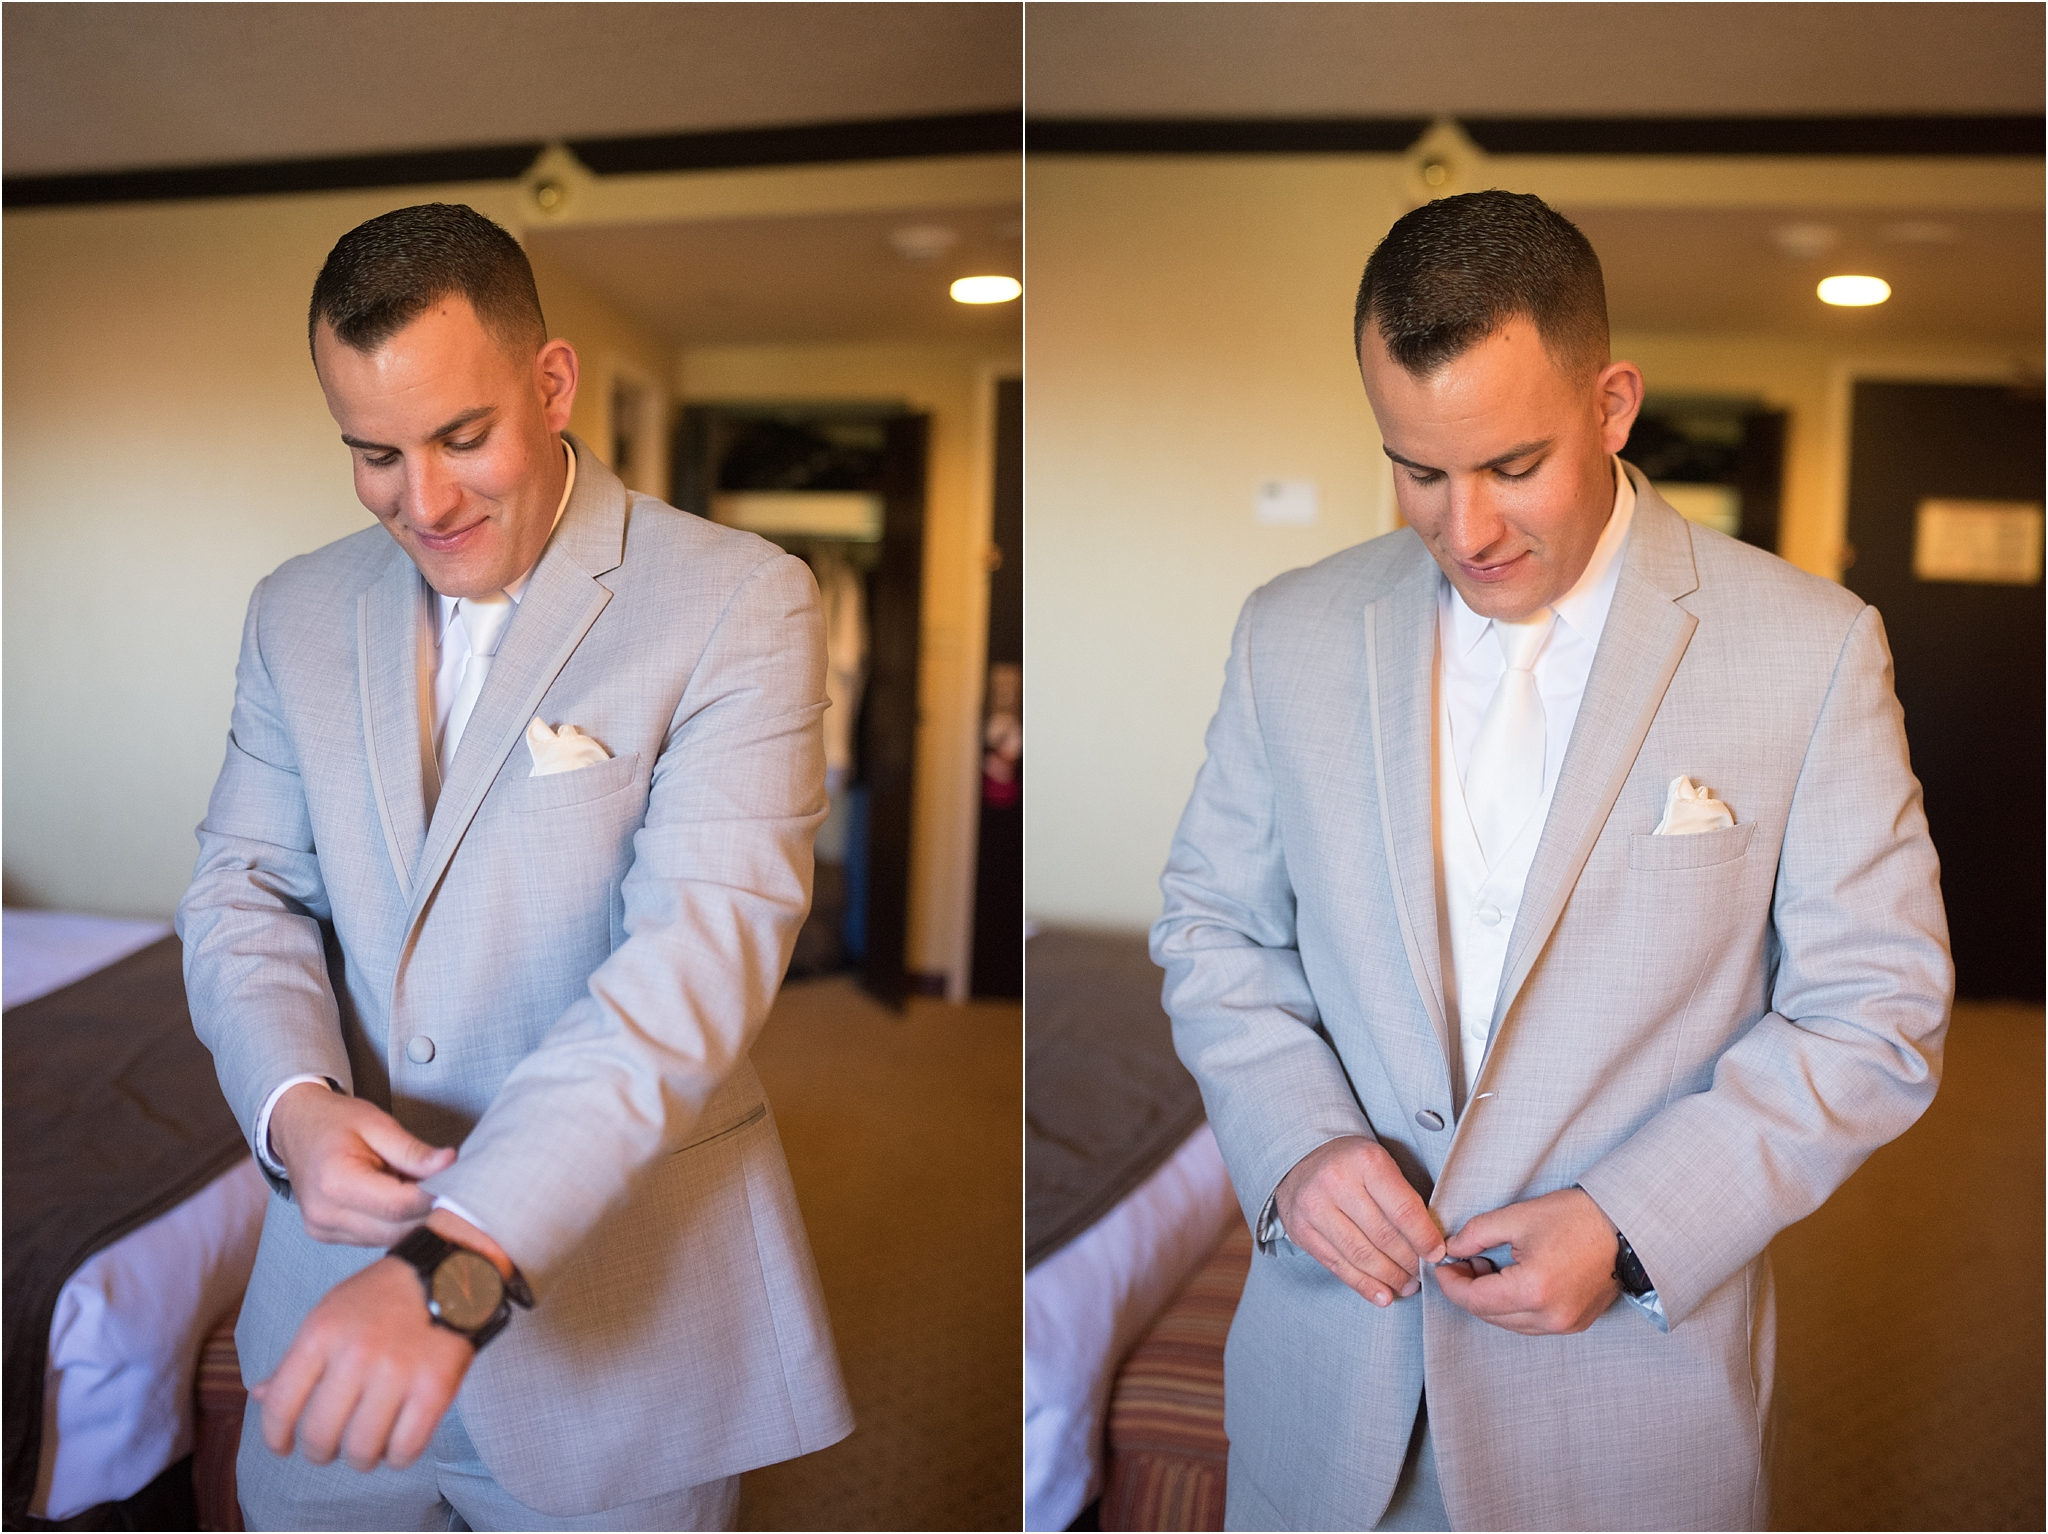 kayla kitts photography - albuquerque wedding photographer - hairpins and scissors - a cake odyssey - new mexico wedding photographer_0020.jpg